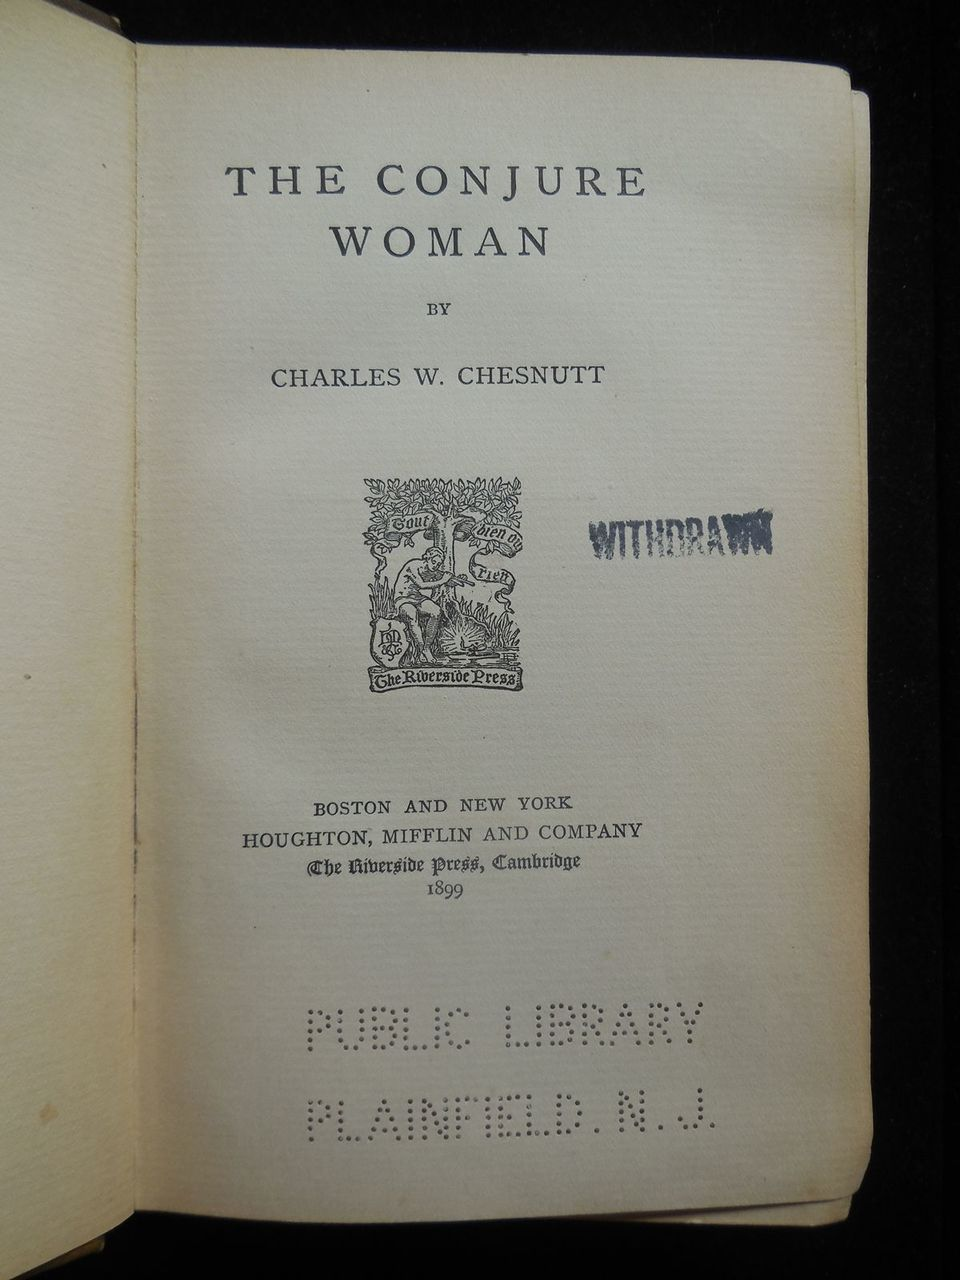 THE CONJURE WOMAN, by Charles Chesnutt - 1899 [1st Ed]